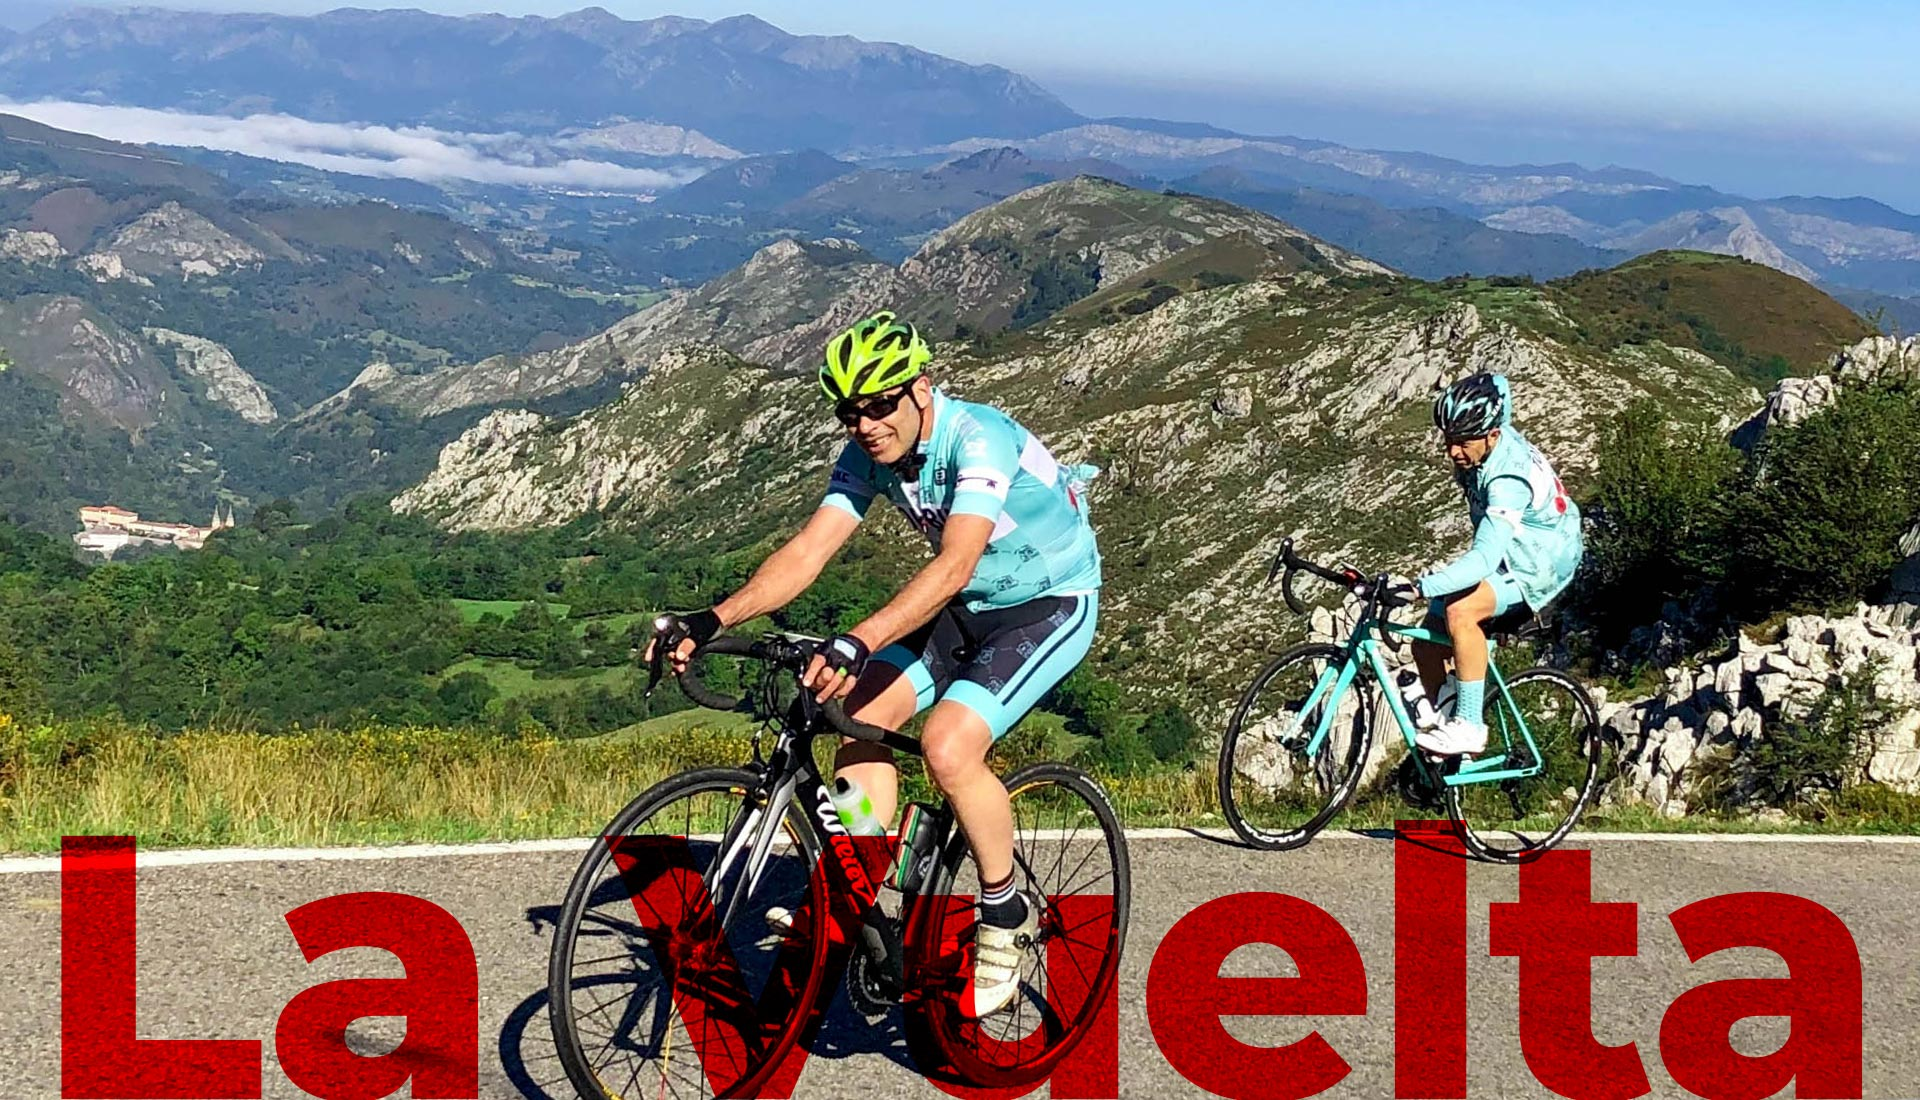 2020 La Vuelta with Topbike Tours - Cycling Holiday in Spain